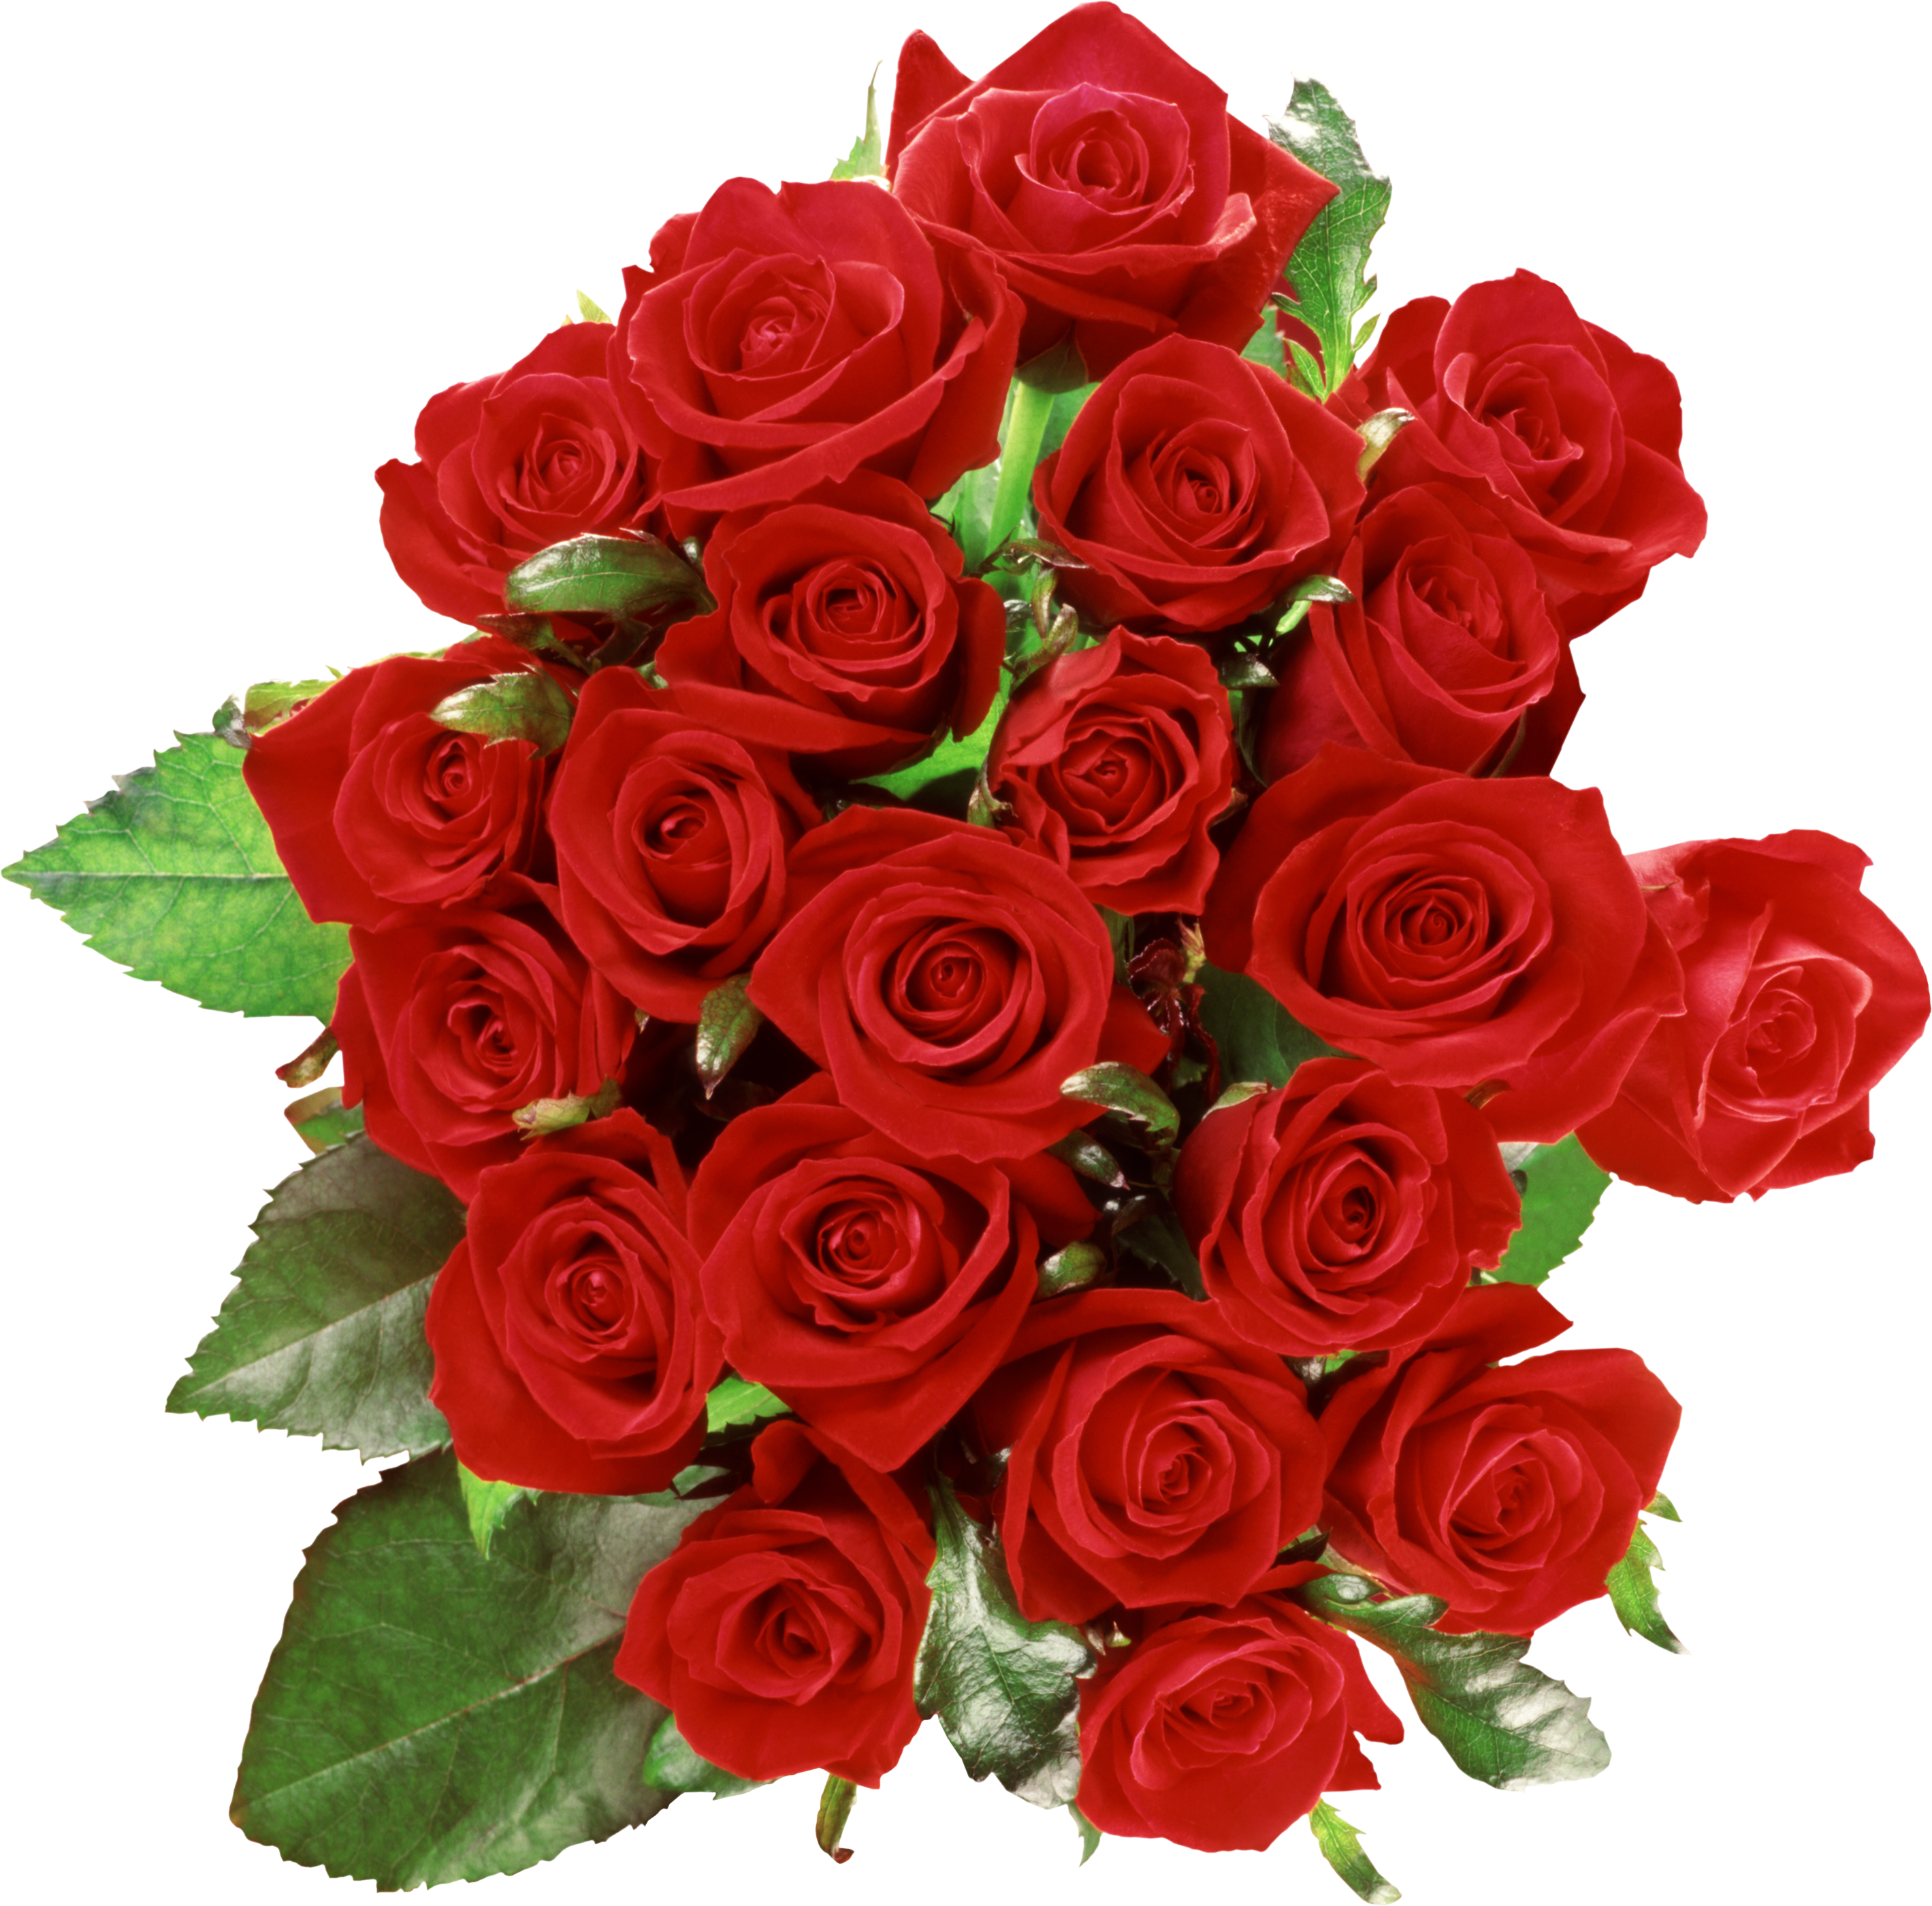 Rose flower png. Bouquet roses flowers transparentpng